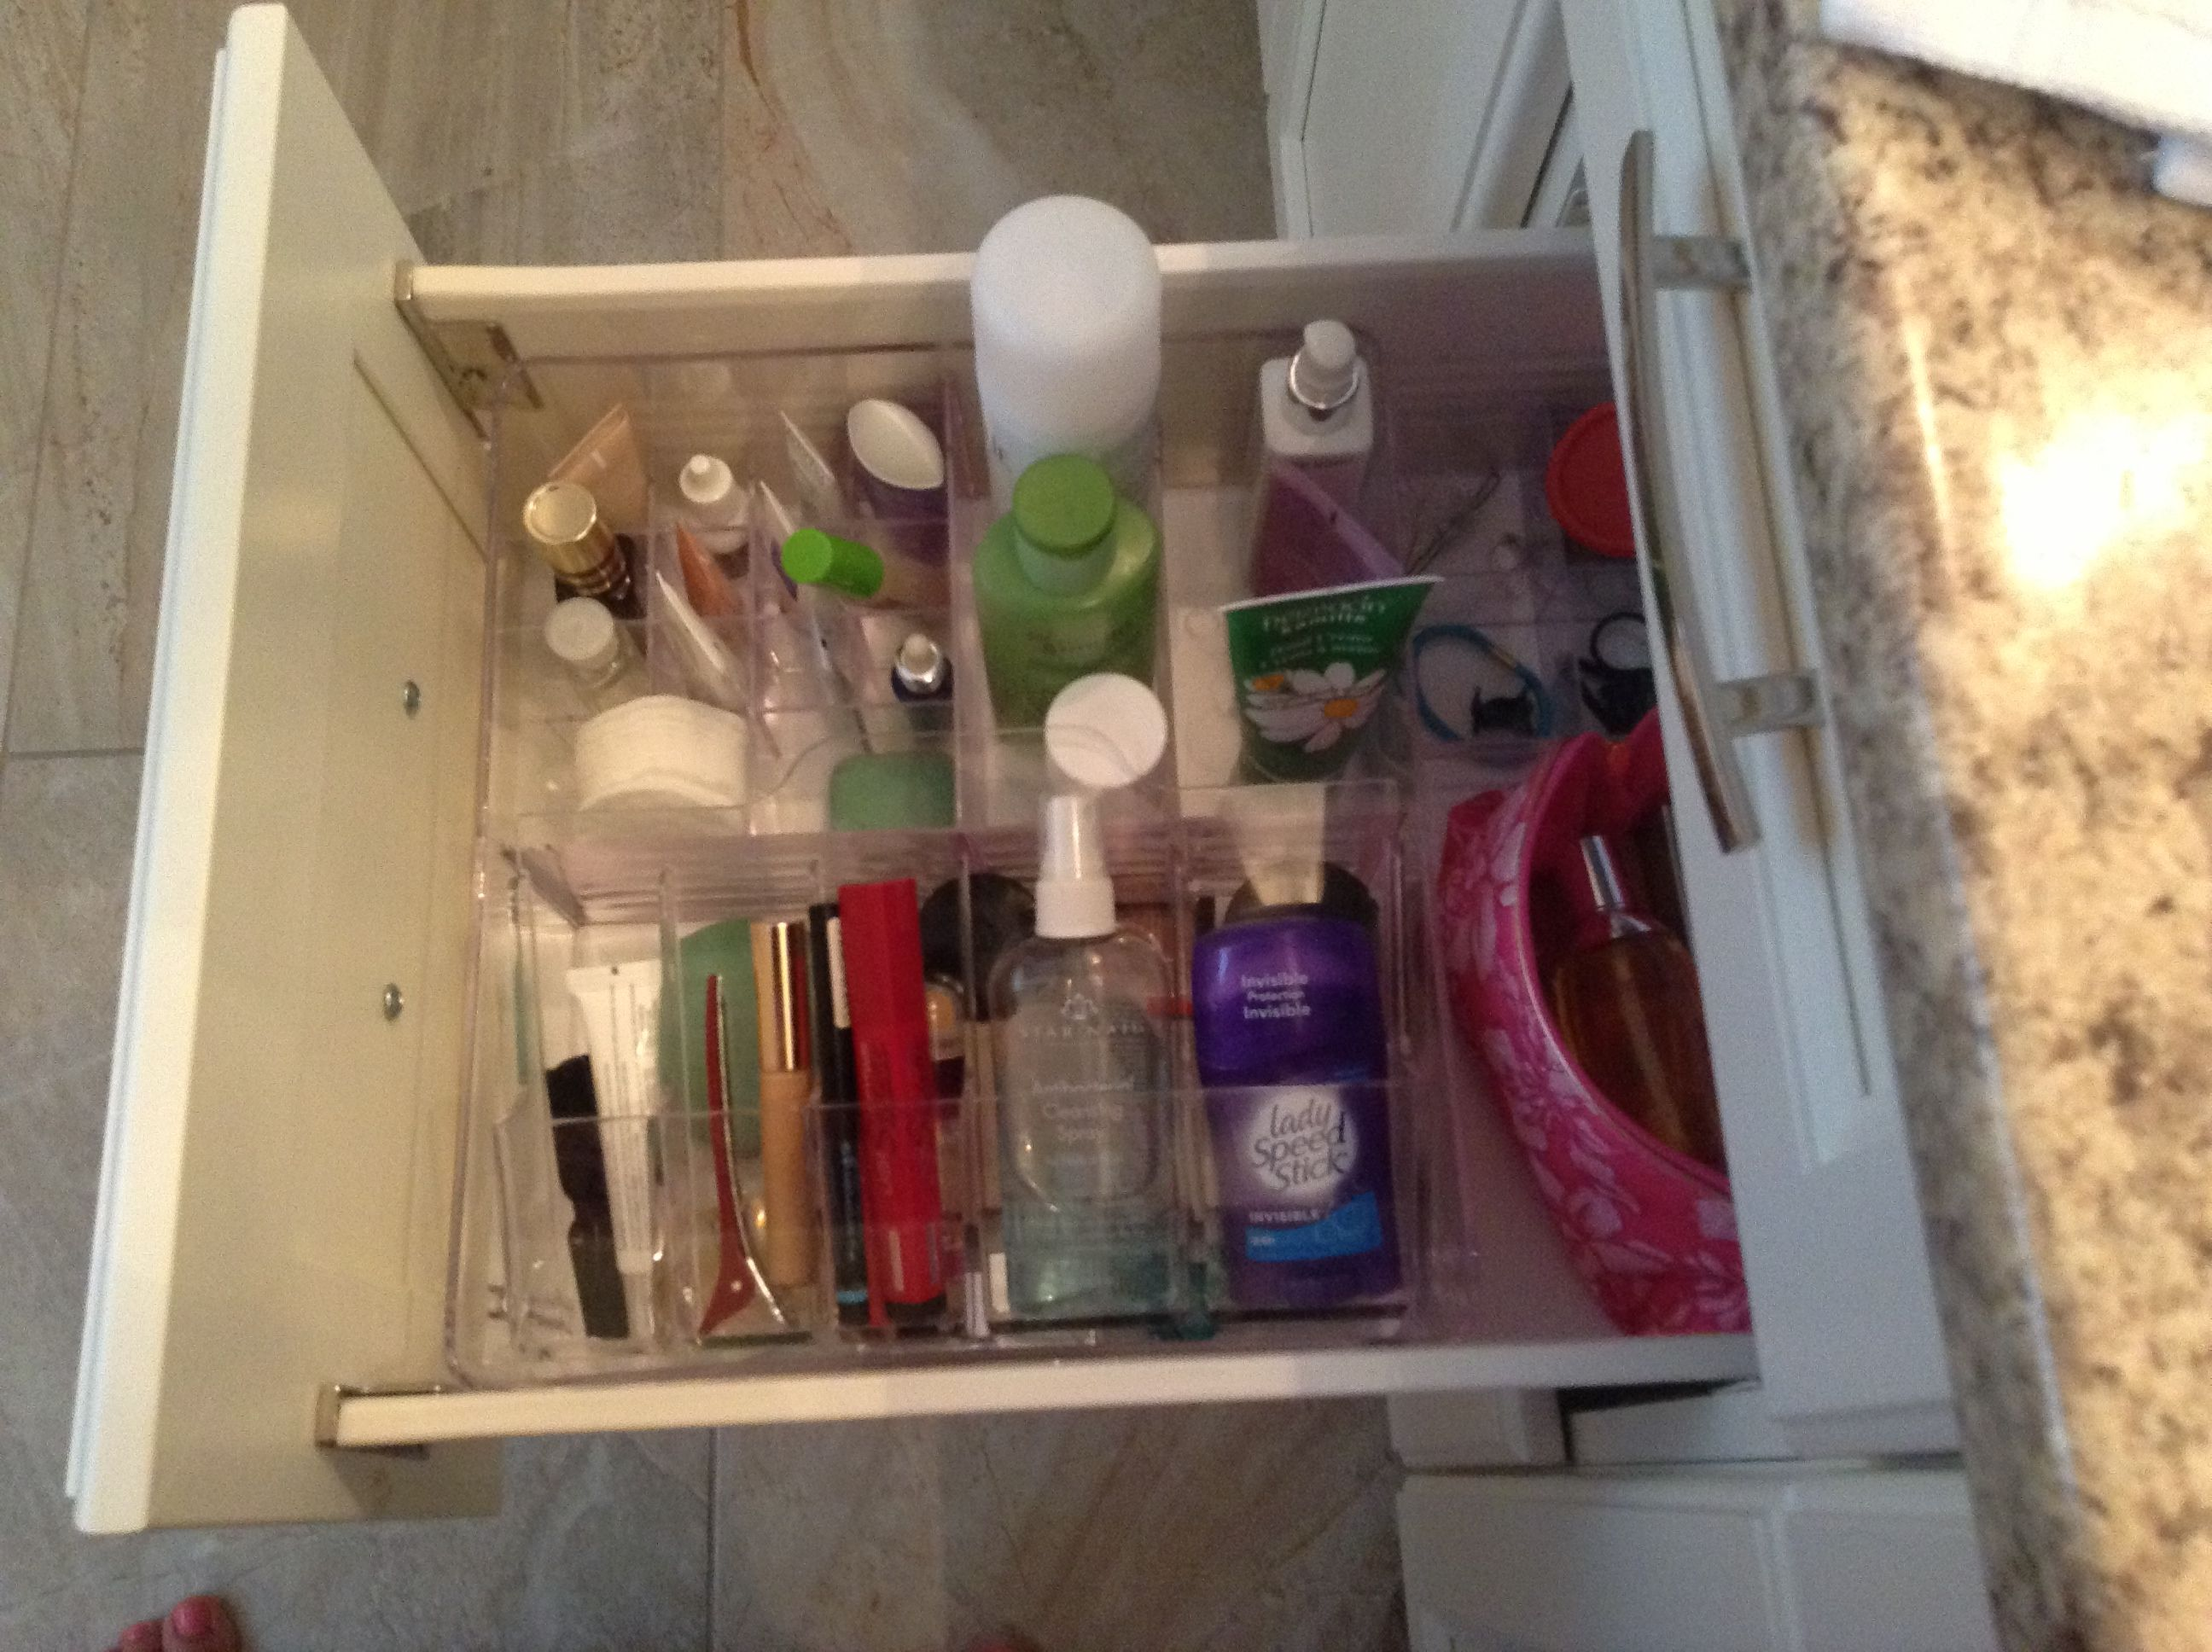 ikea bathroom organizer, so clever | Things for the Home